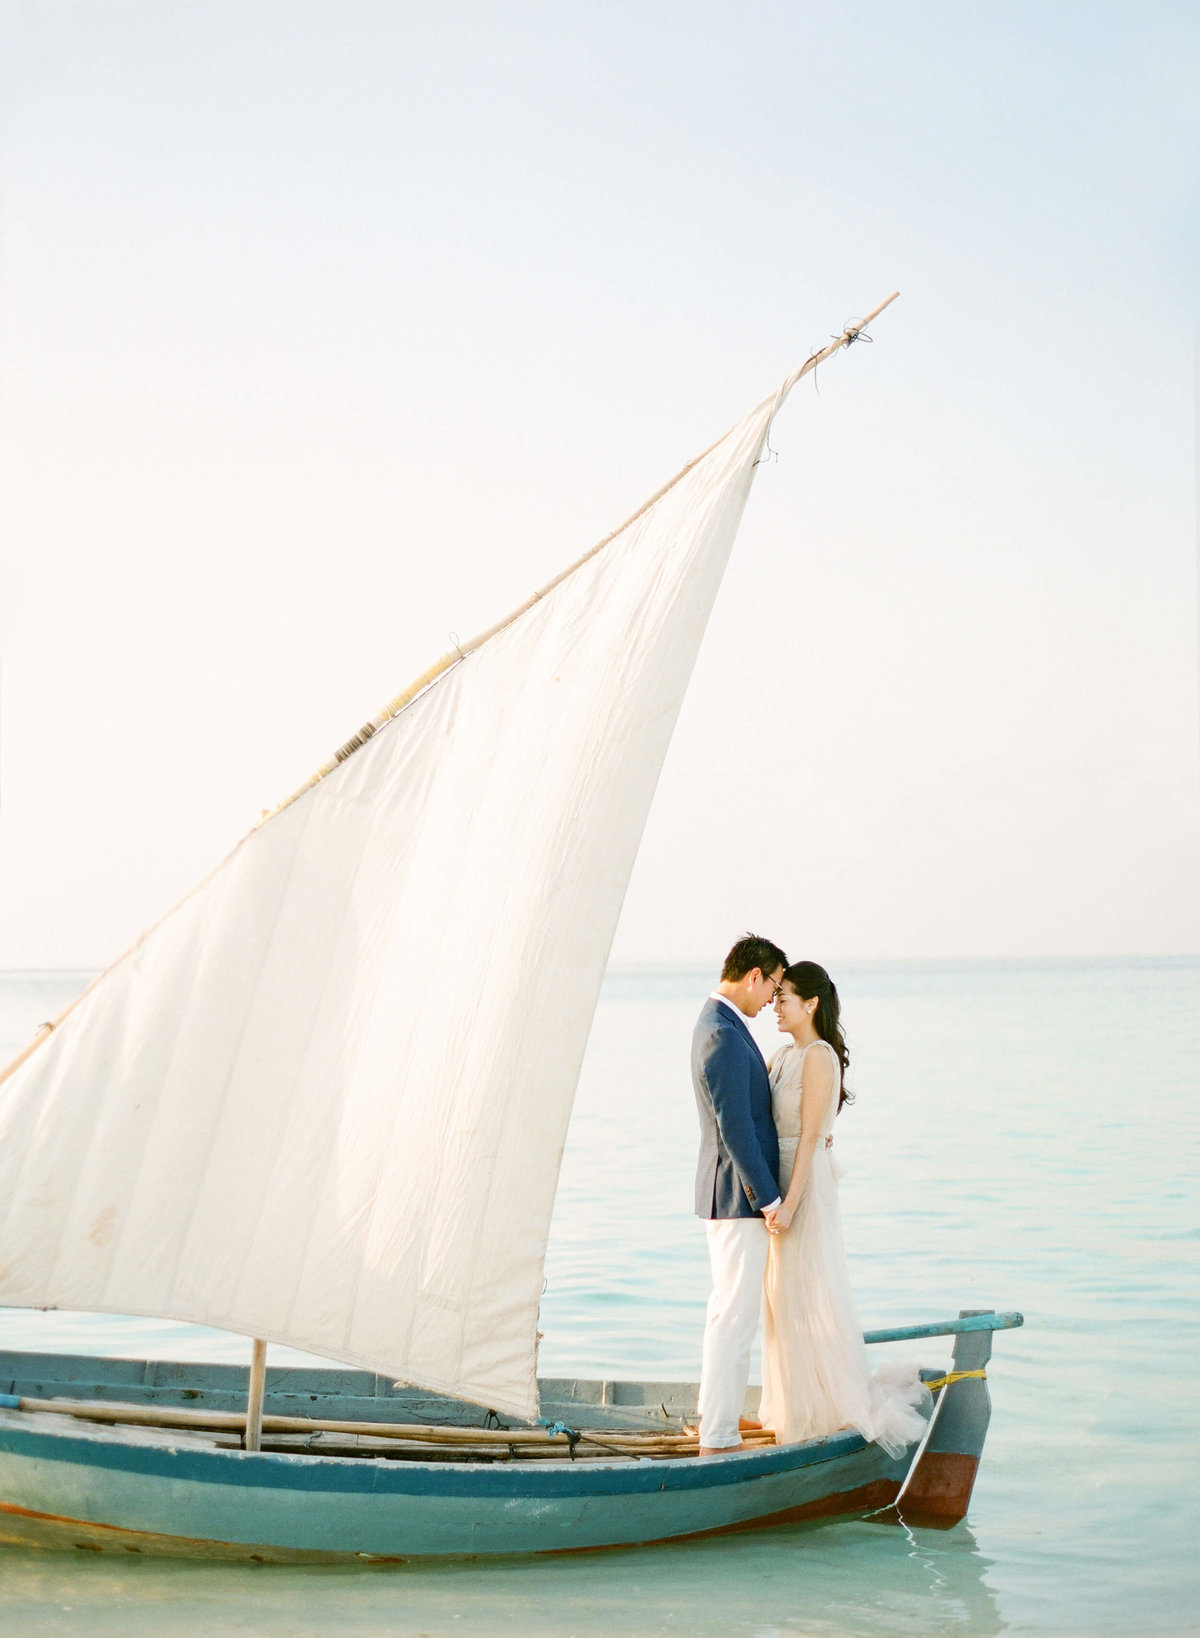 14-KTMerry-destinationwedding-Maldives-sailboat-portrait